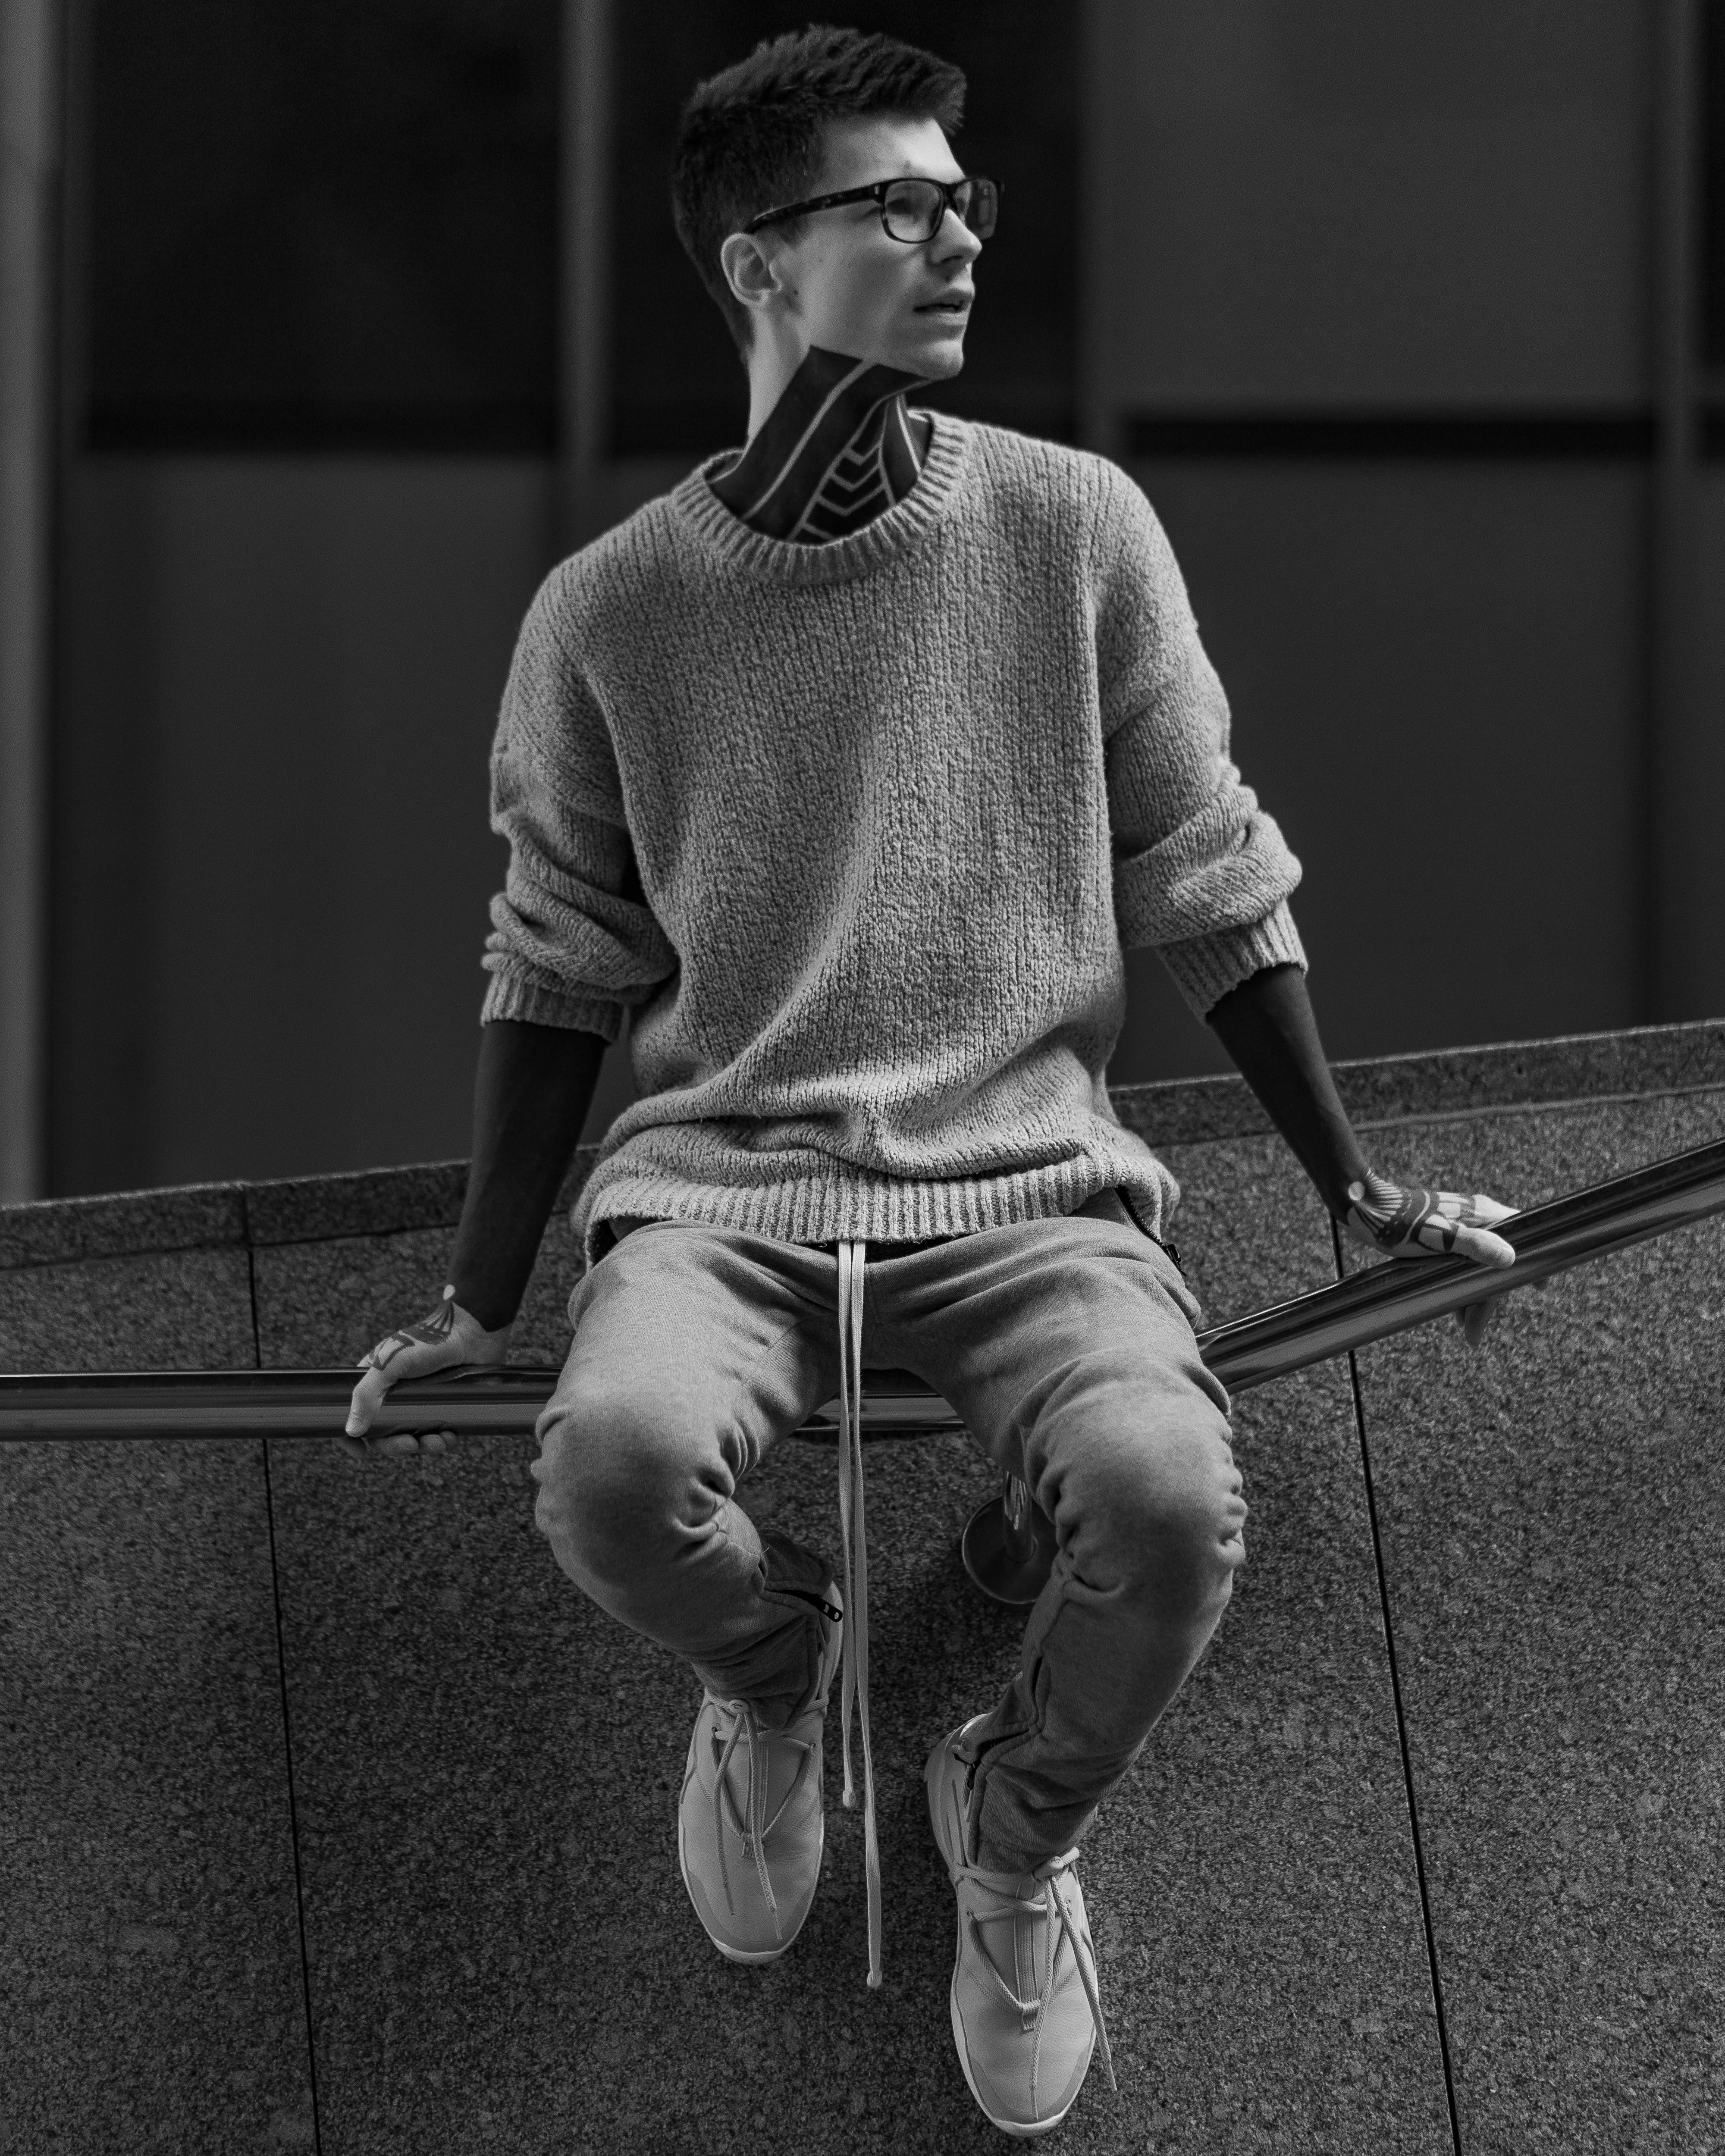 Grayscale Photo Of Man Sitting On Handrail